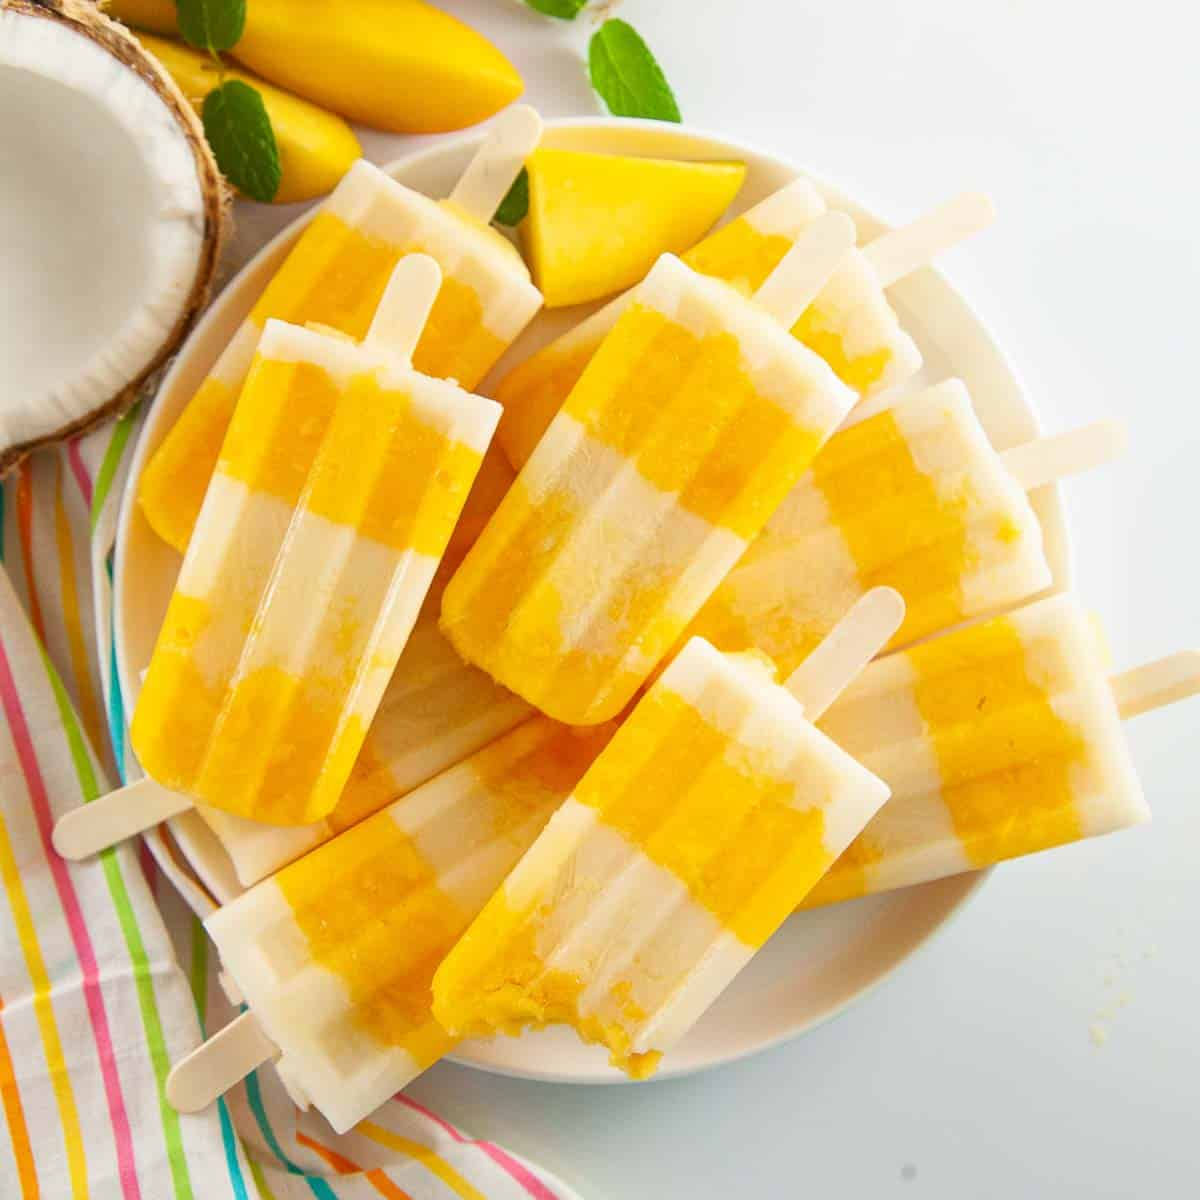 Mango popsicles on a plate.